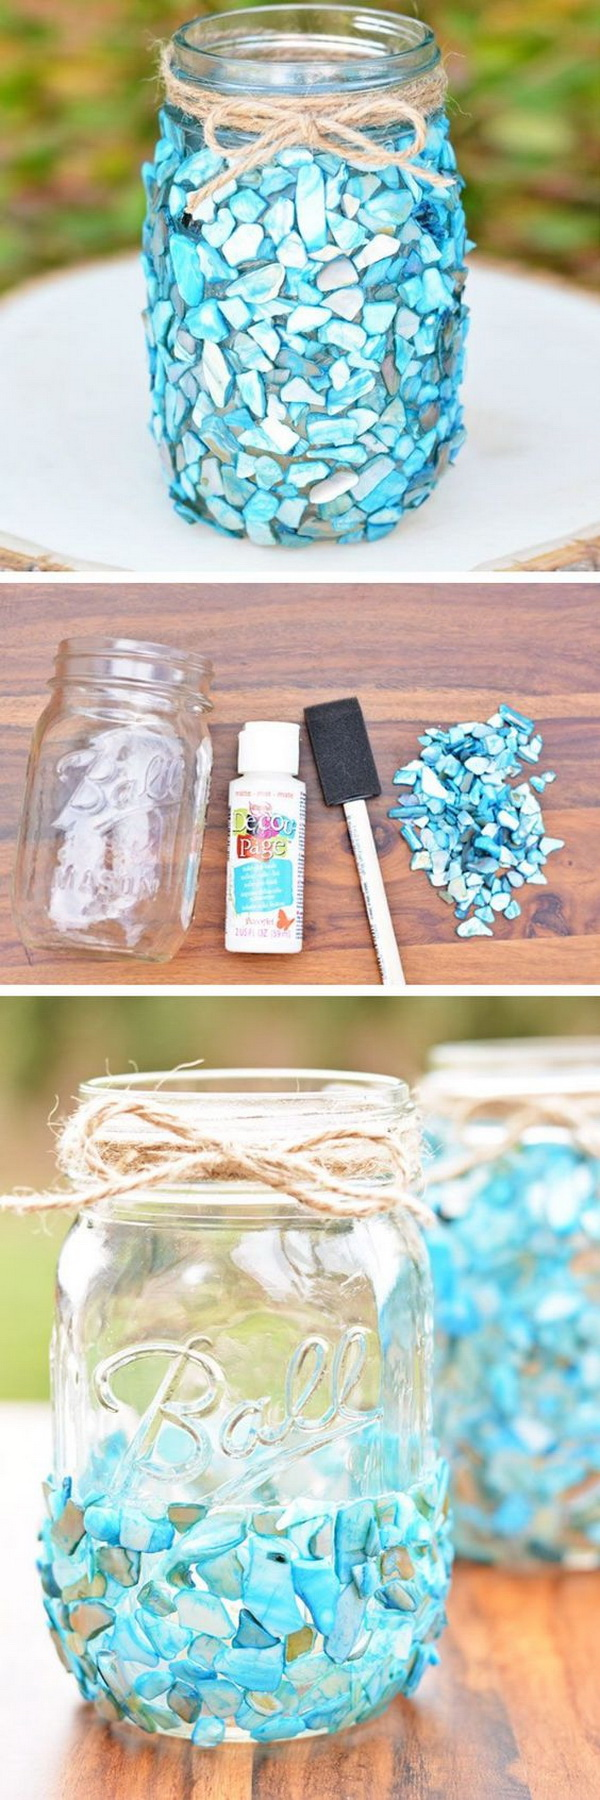 Beach Inspired Mason Jar Craft.